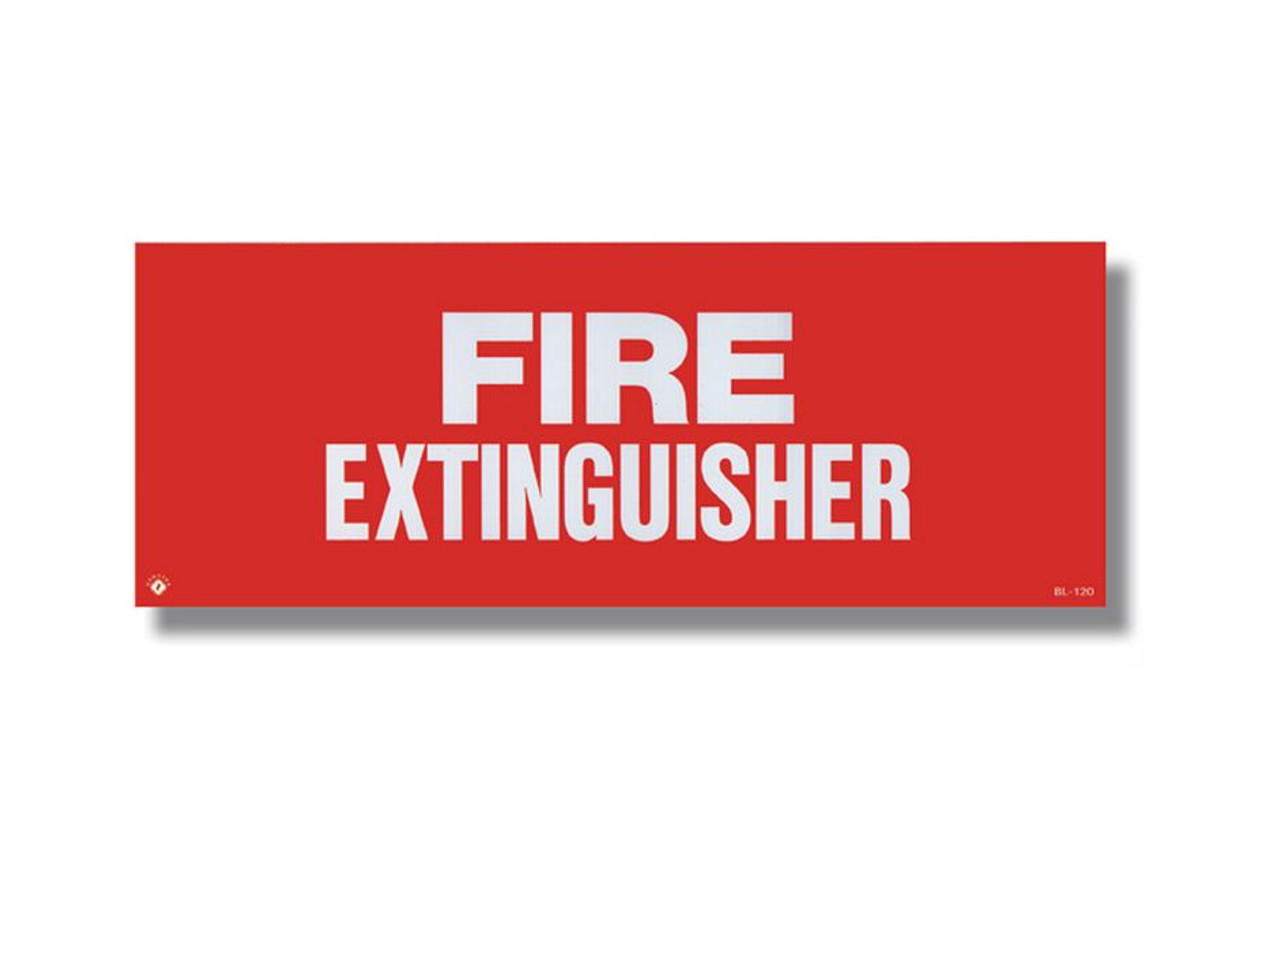 """BL120 Vinyl Self-adhesive Fire Extinguisher Sign 12"""" x 4.5"""""""